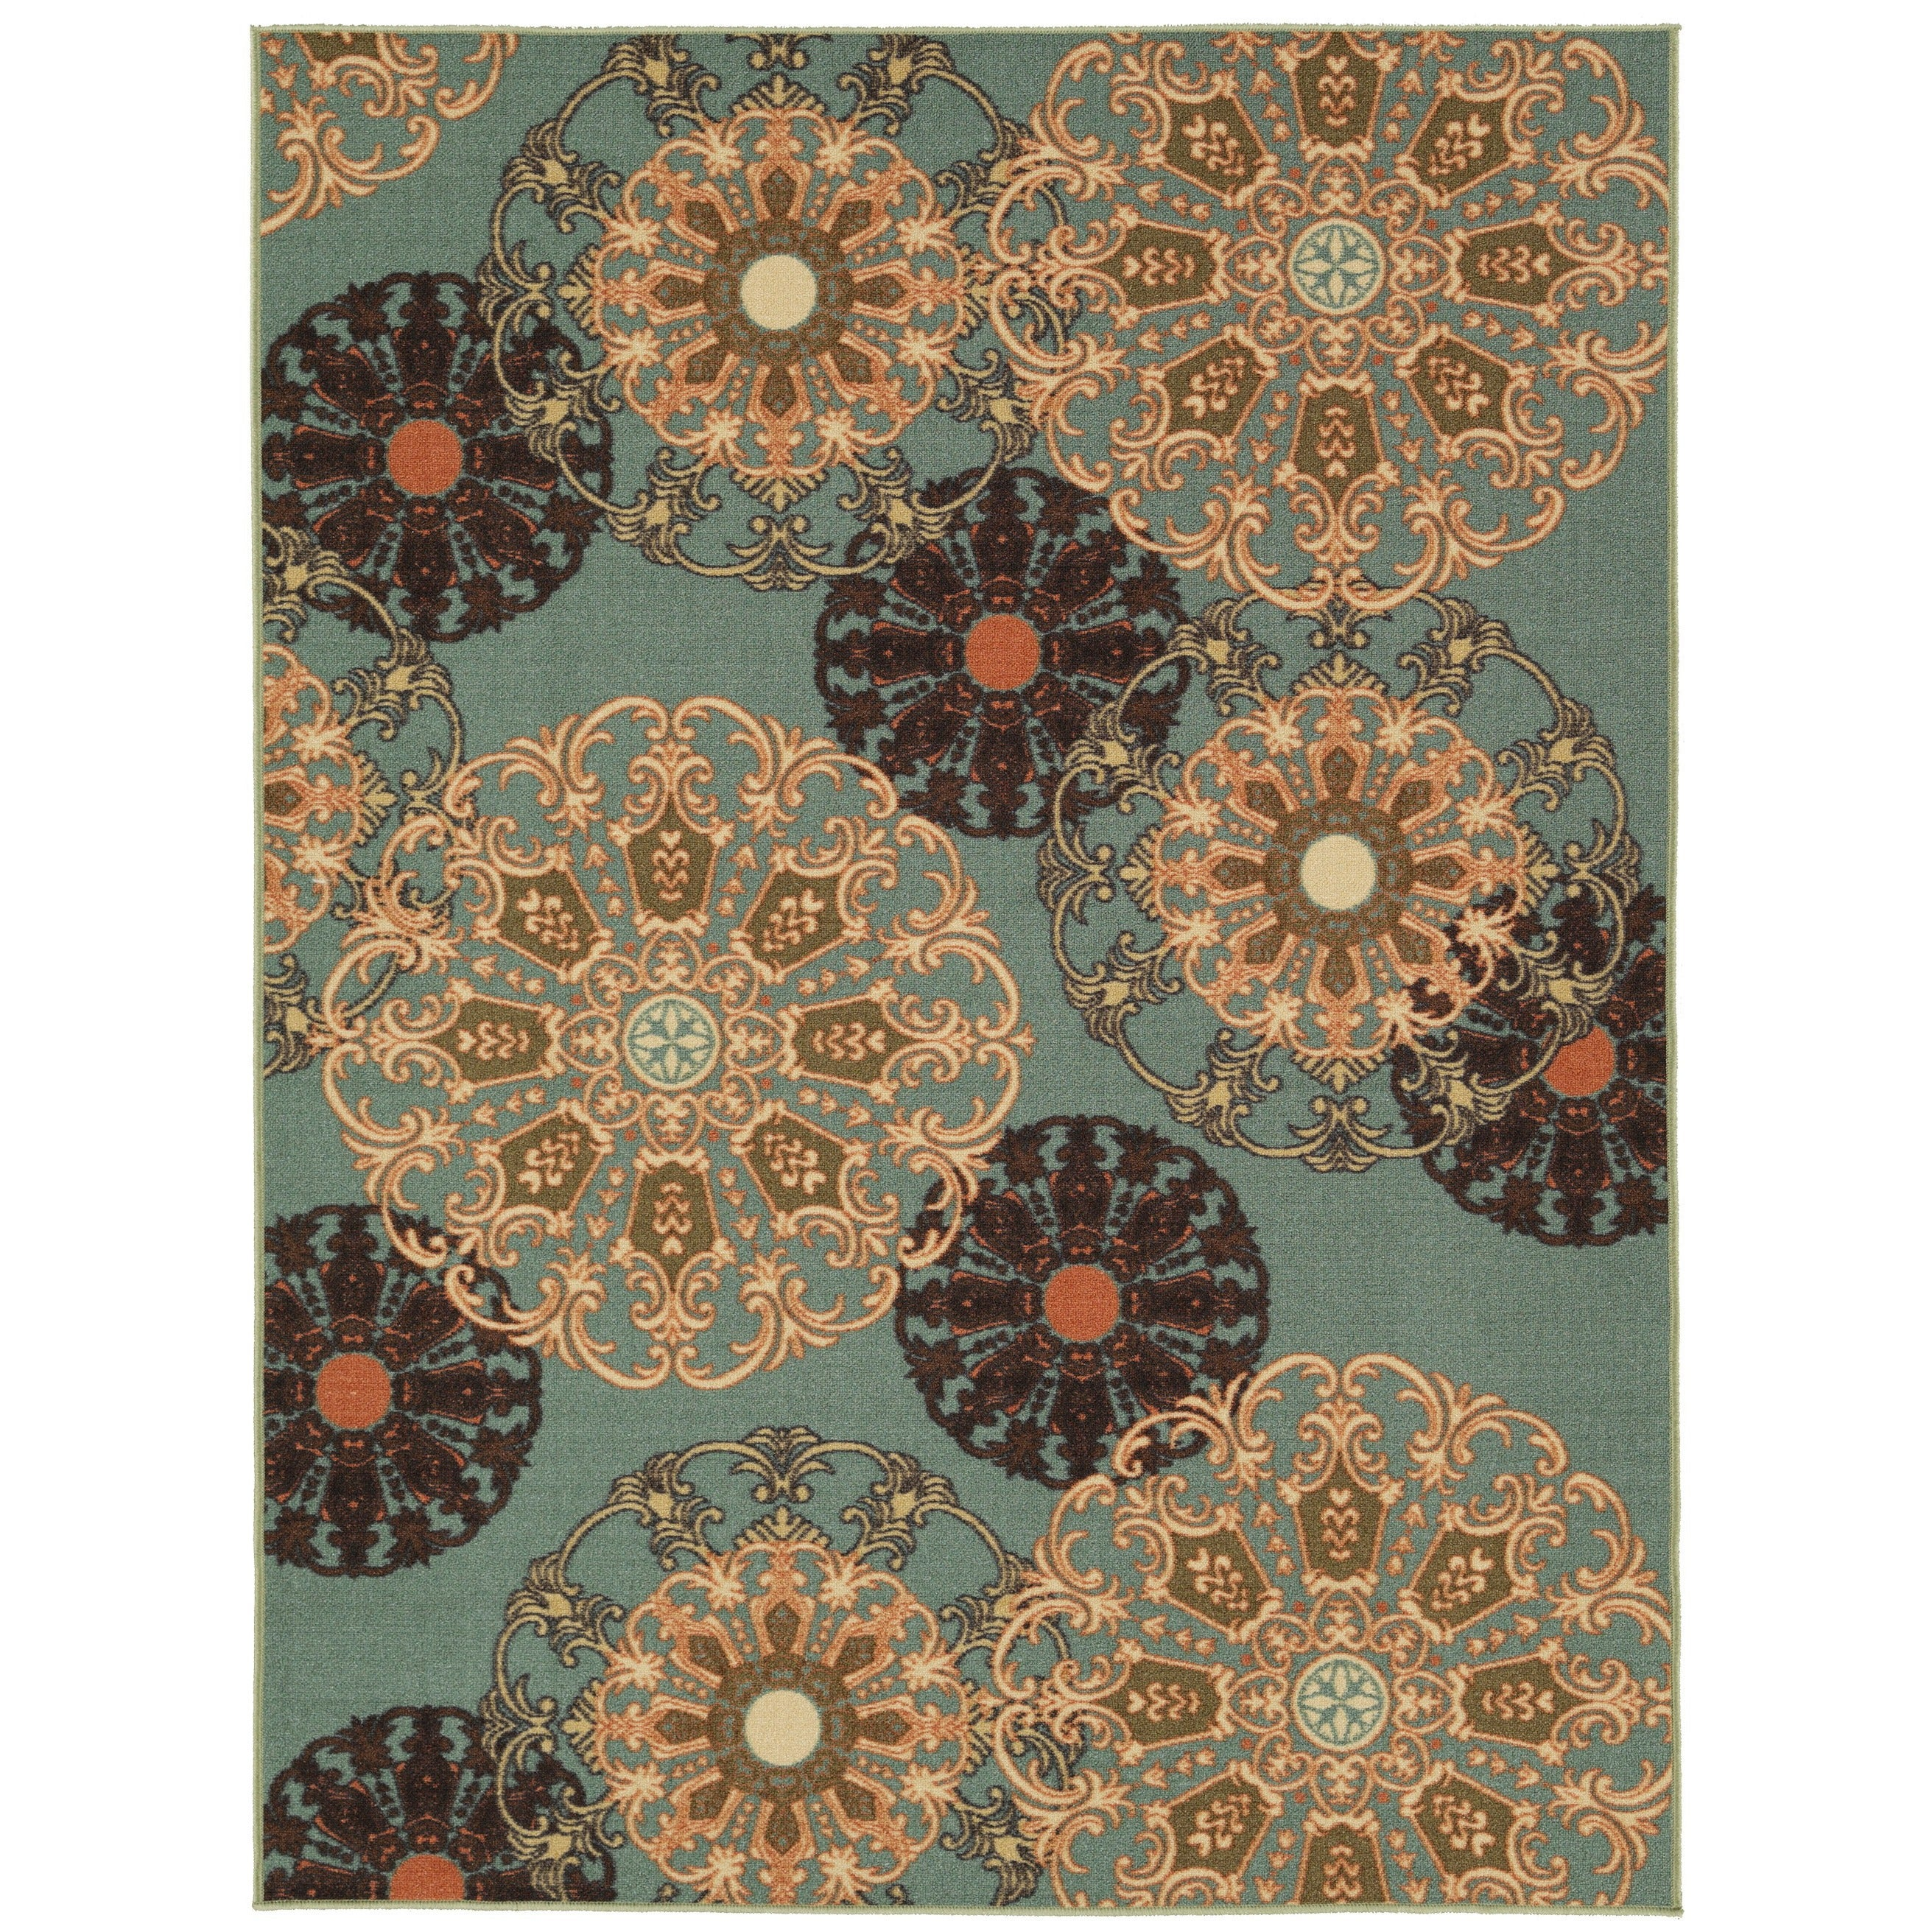 Ottomanson Ottohome Collection Aqua Blue Damask Design Sa...